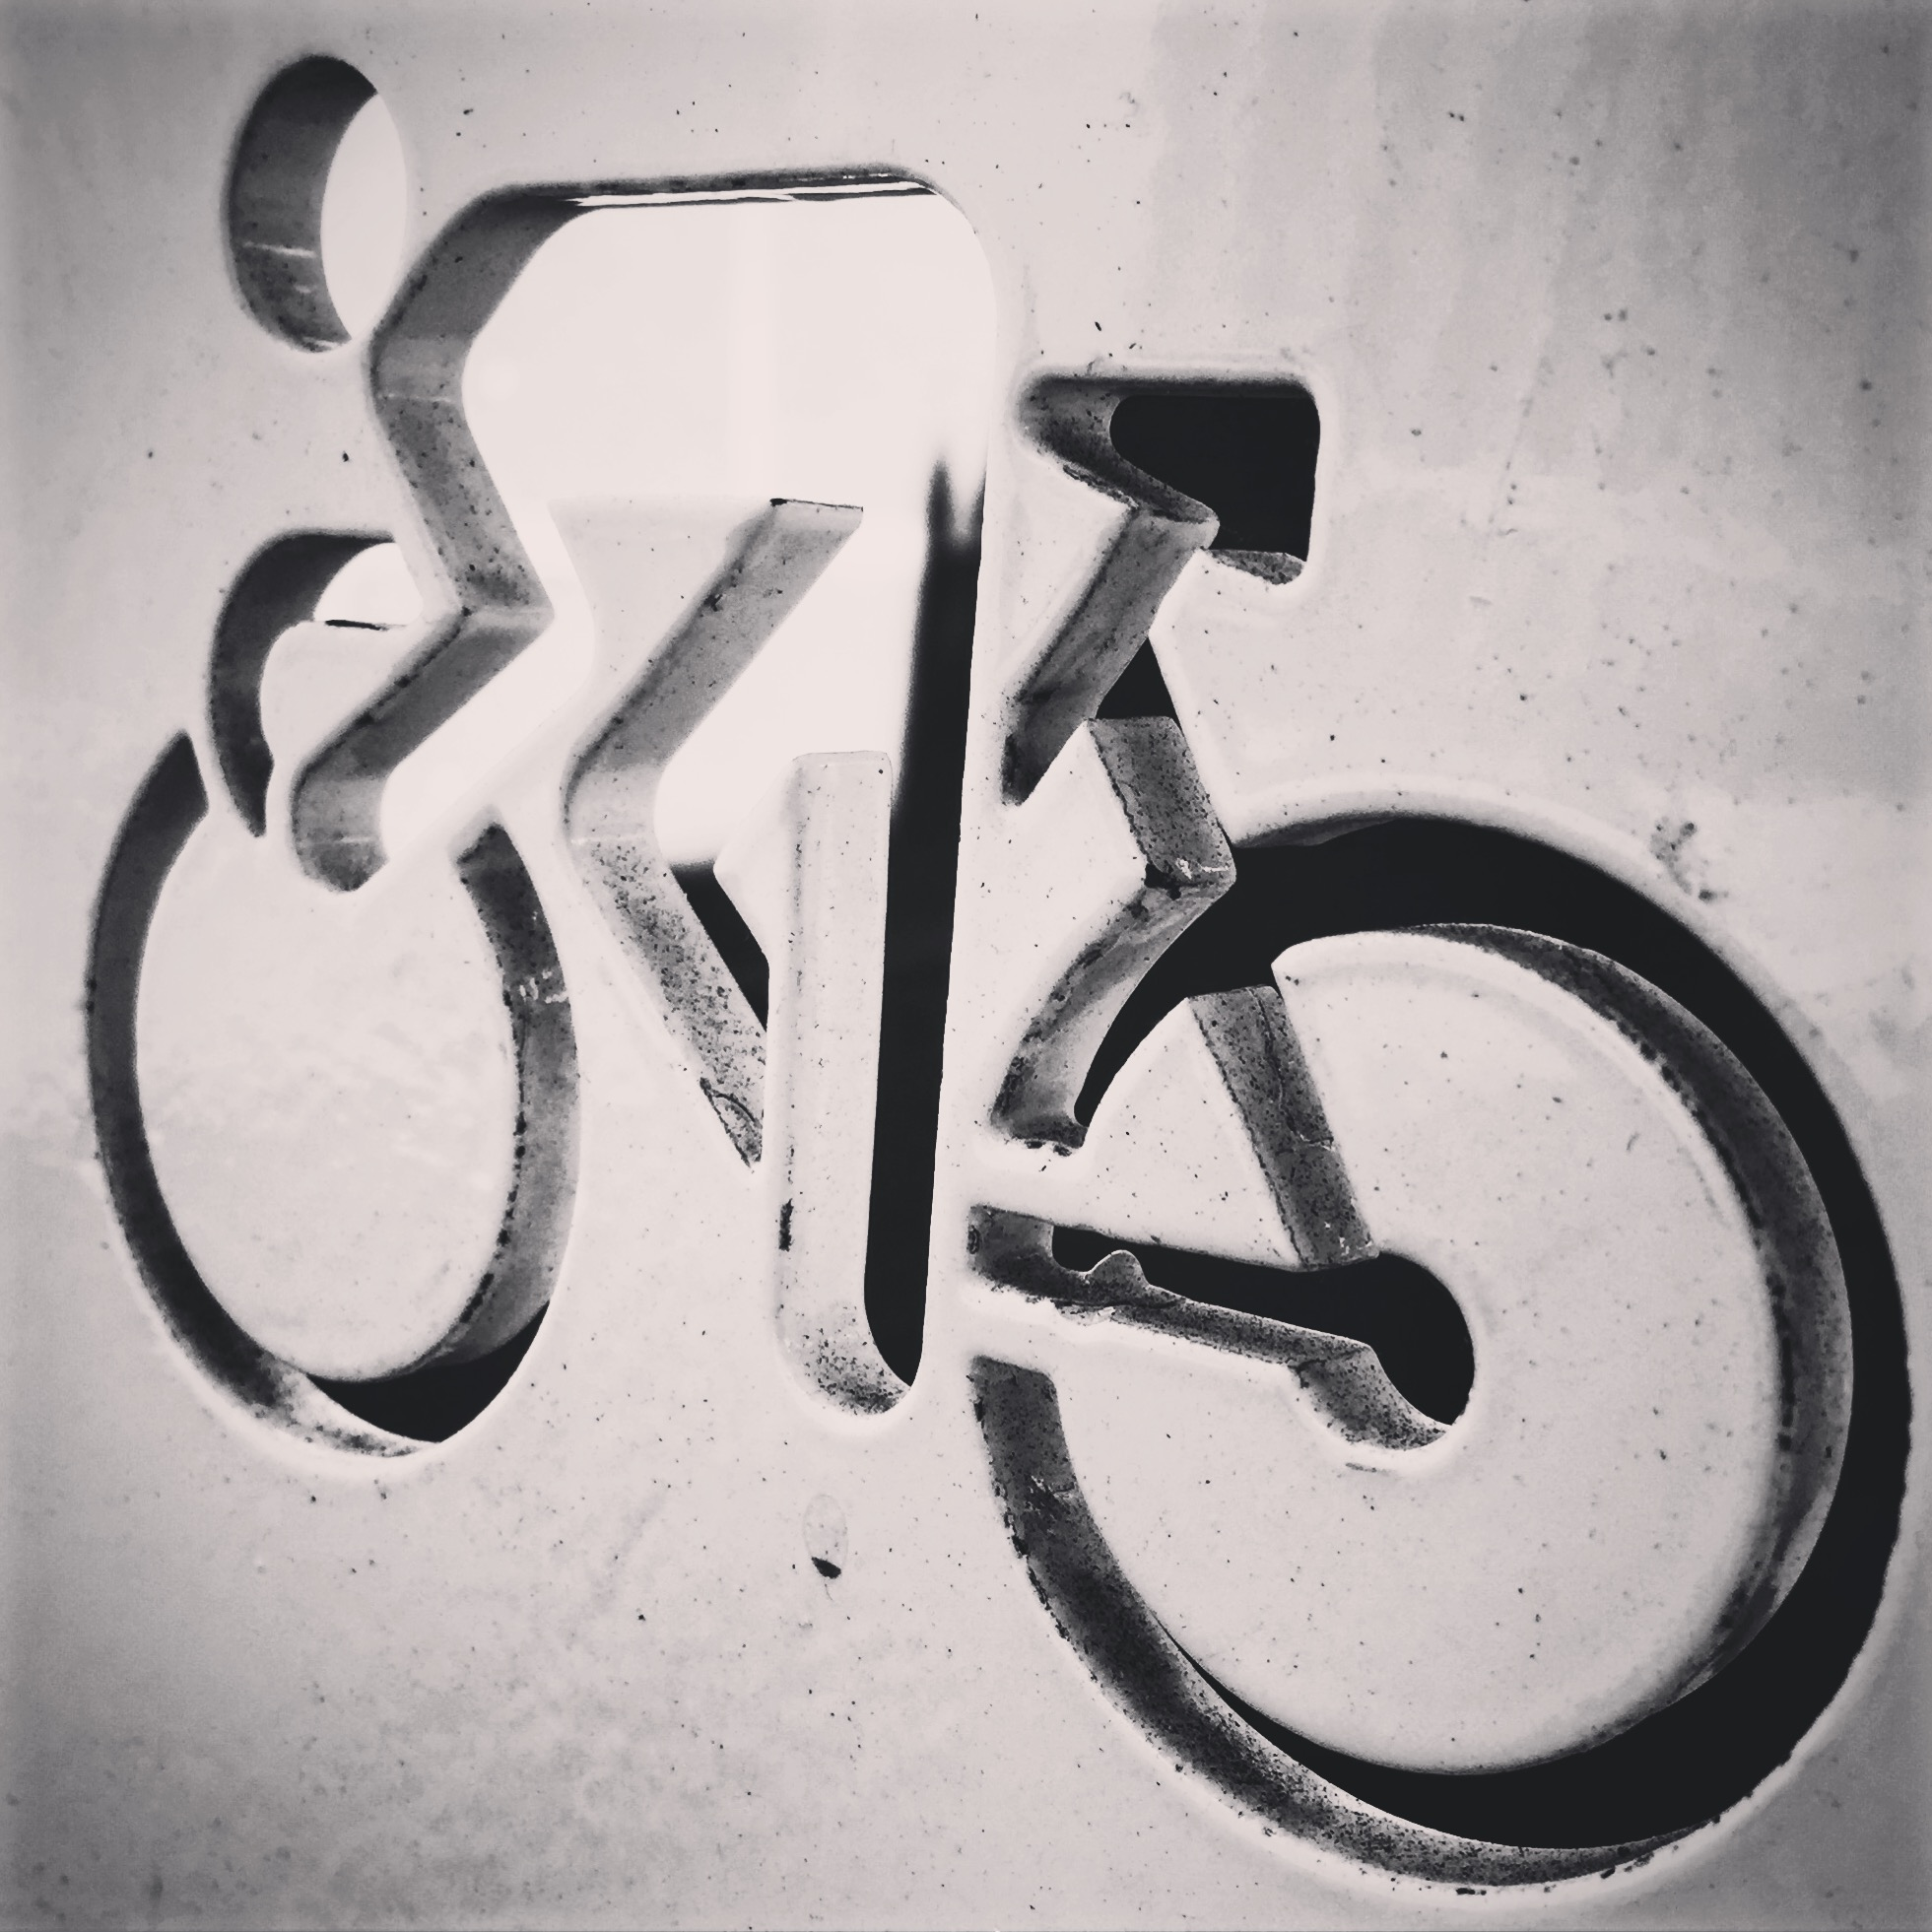 Cycling graffiti